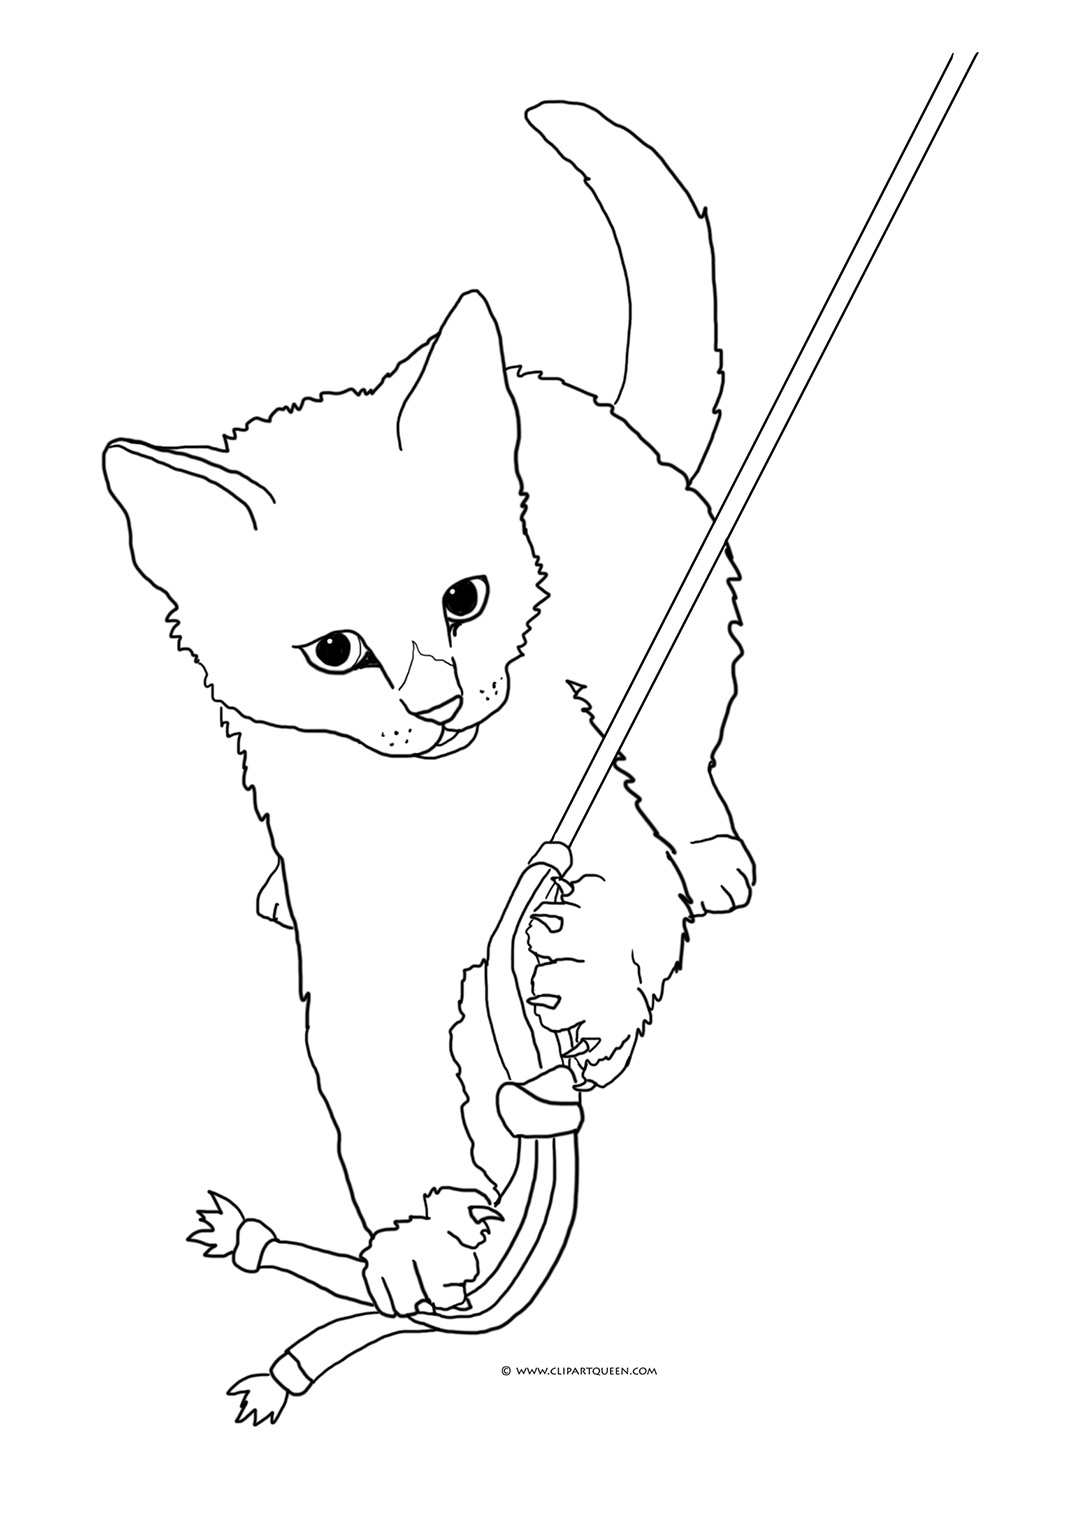 cats coloring pages - photo#28